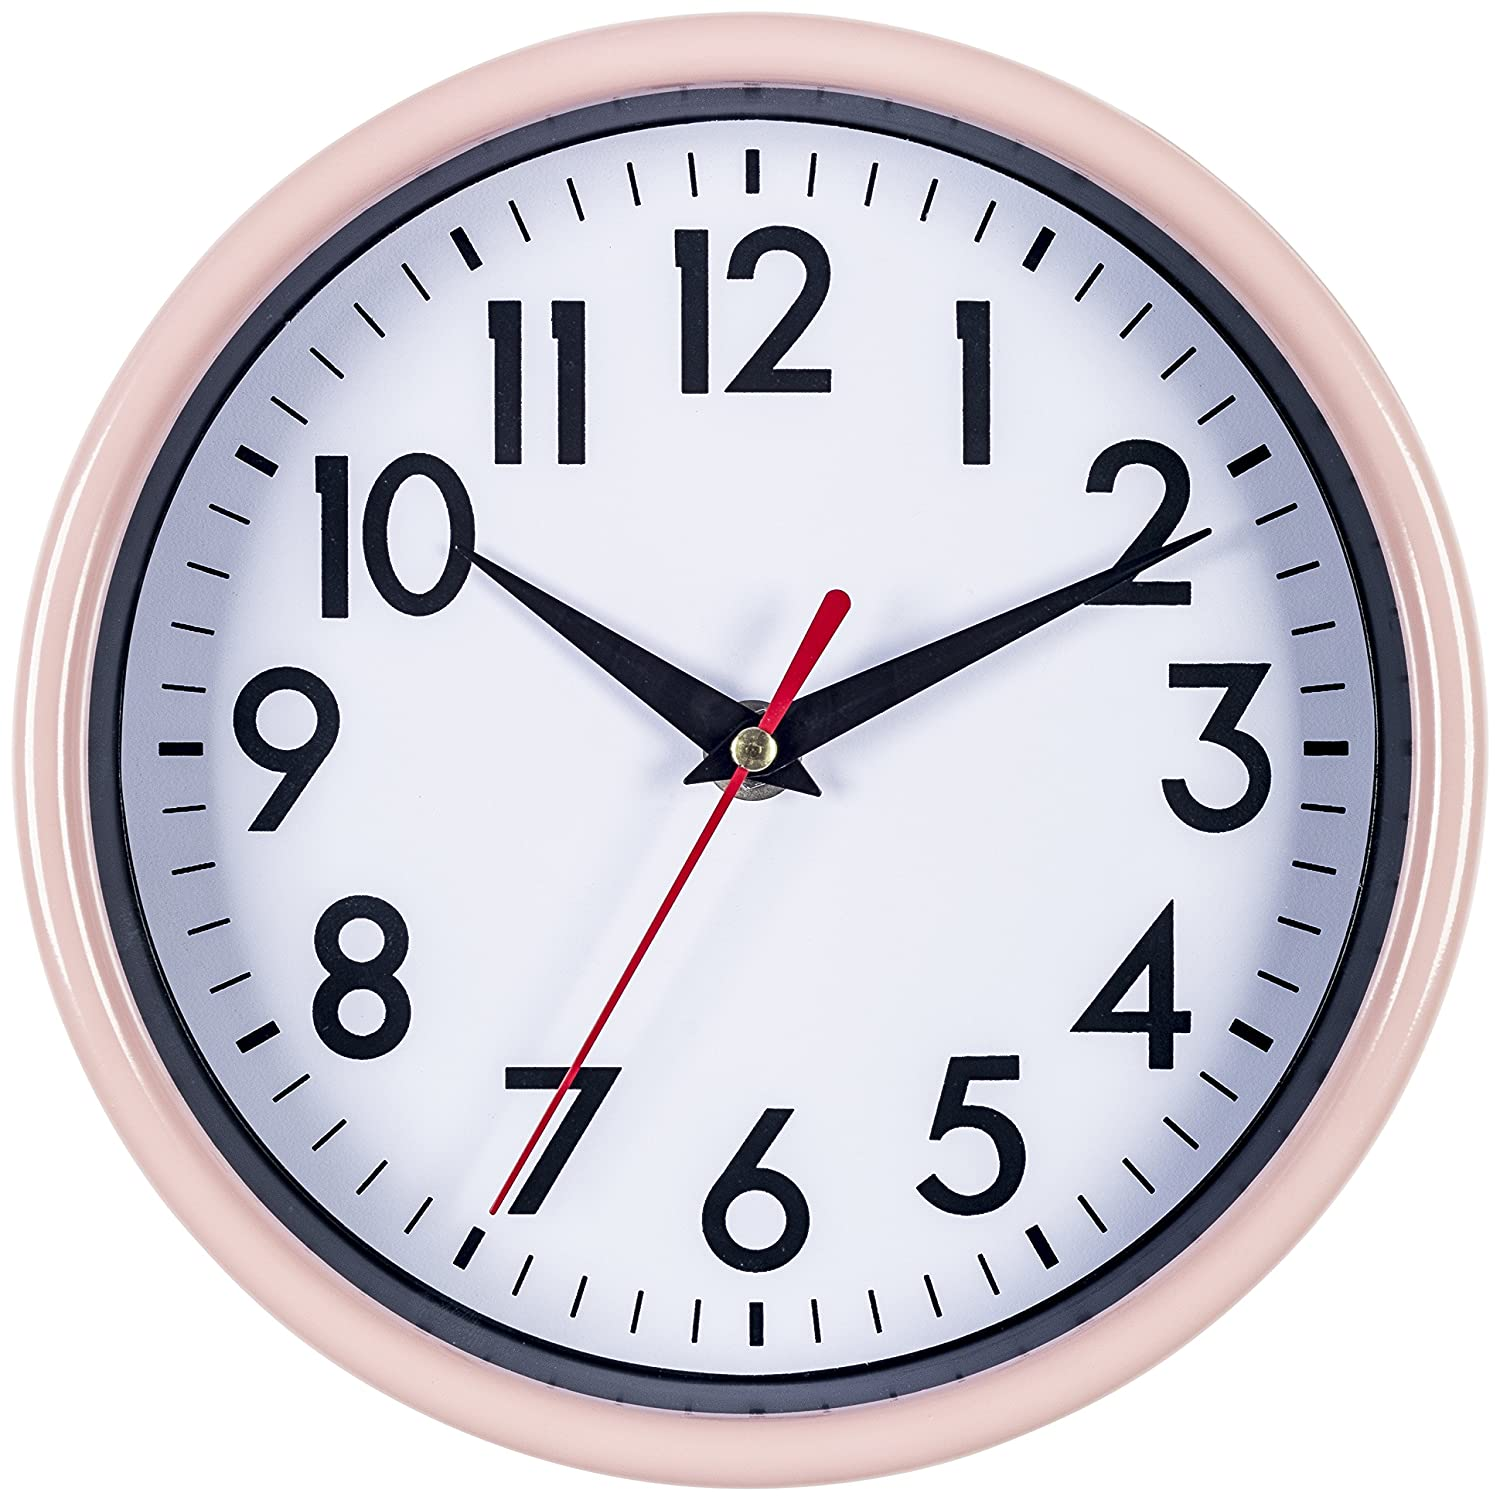 """Bernhard Products - Pink Wall Clock 8"""" Silent Non-Ticking Quality Quartz Battery Operated Clock for Girls/Kitchen/Classroom/Nursery Room Easy to Read (Pink)"""